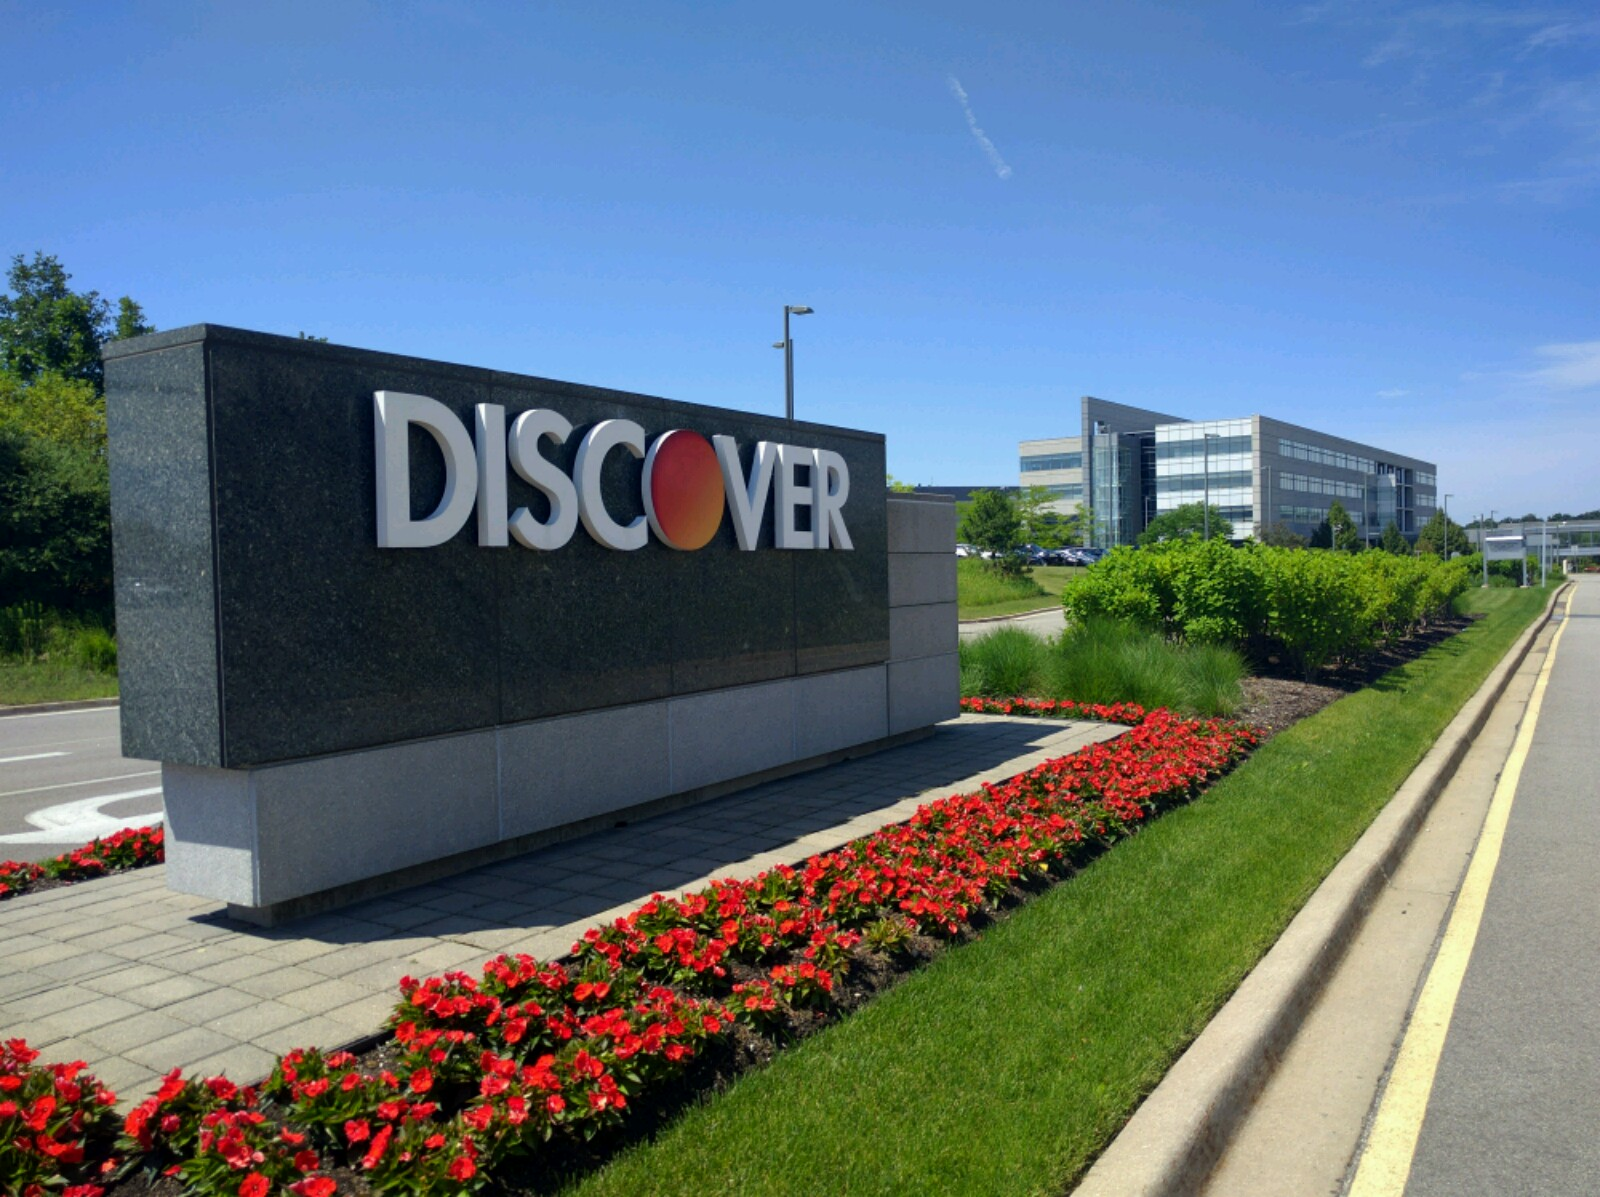 Discover Financial Services Corporate Office and Headquarters